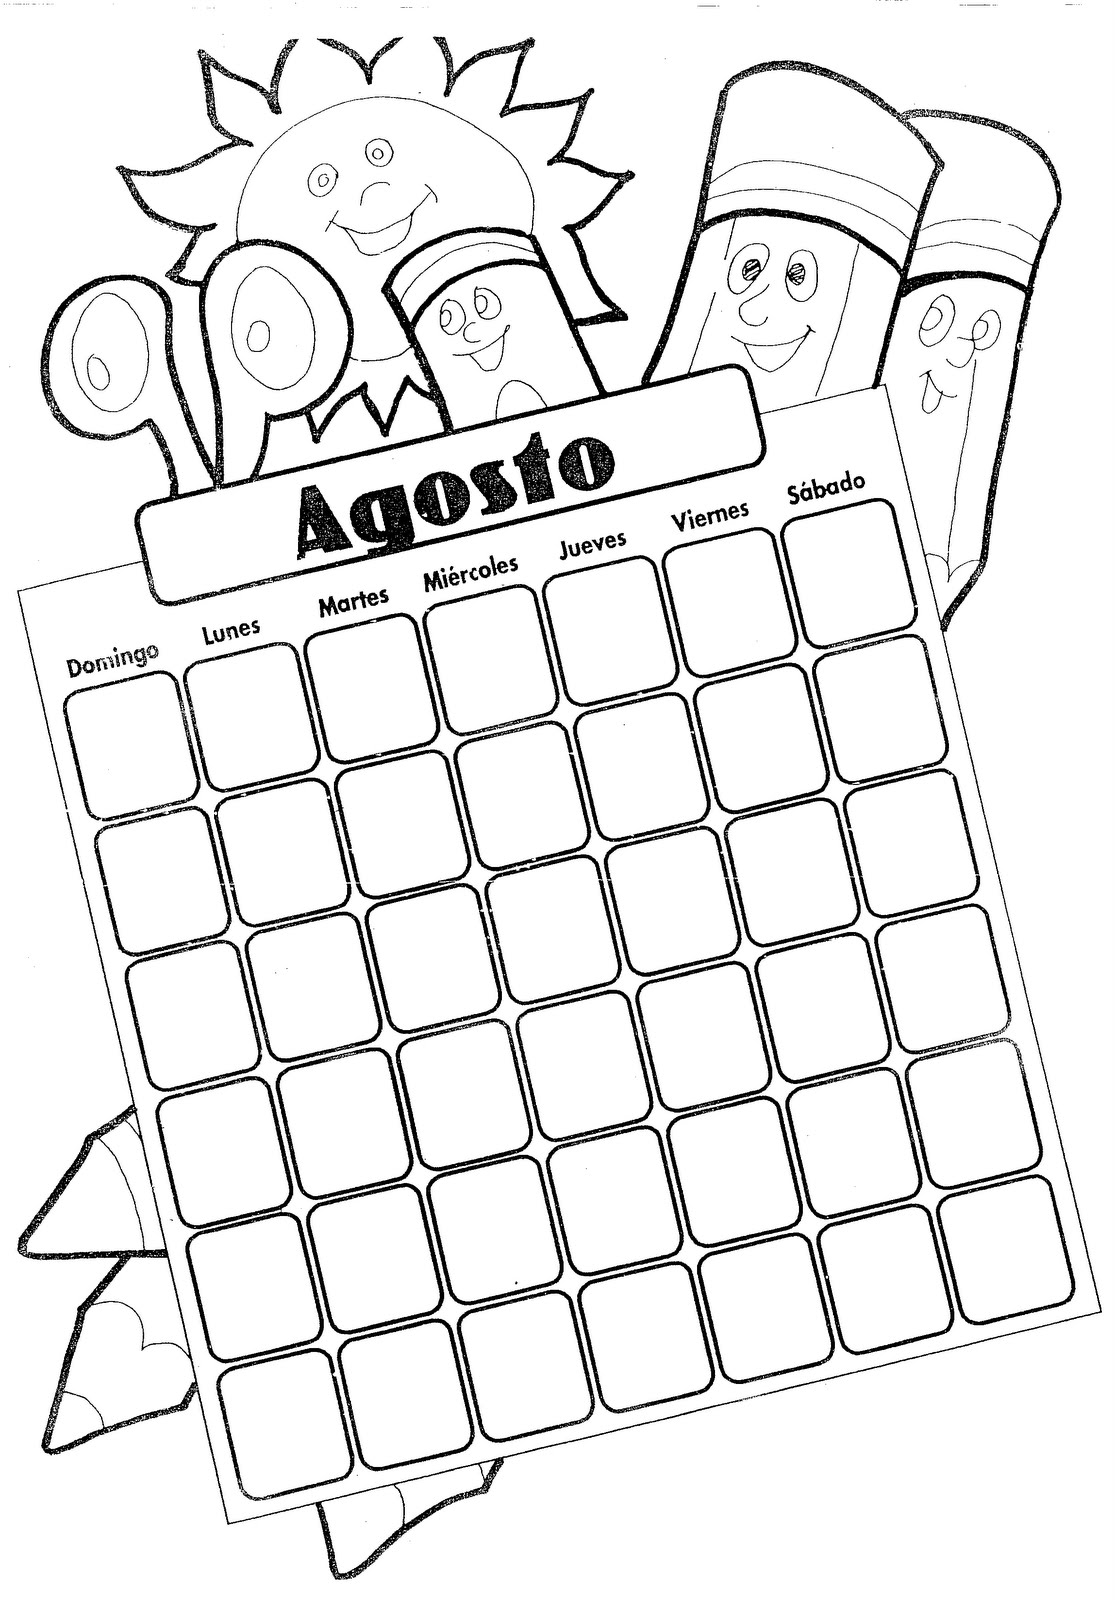 Dna Double Helix Coloring Worksheet Sketch Coloring Page